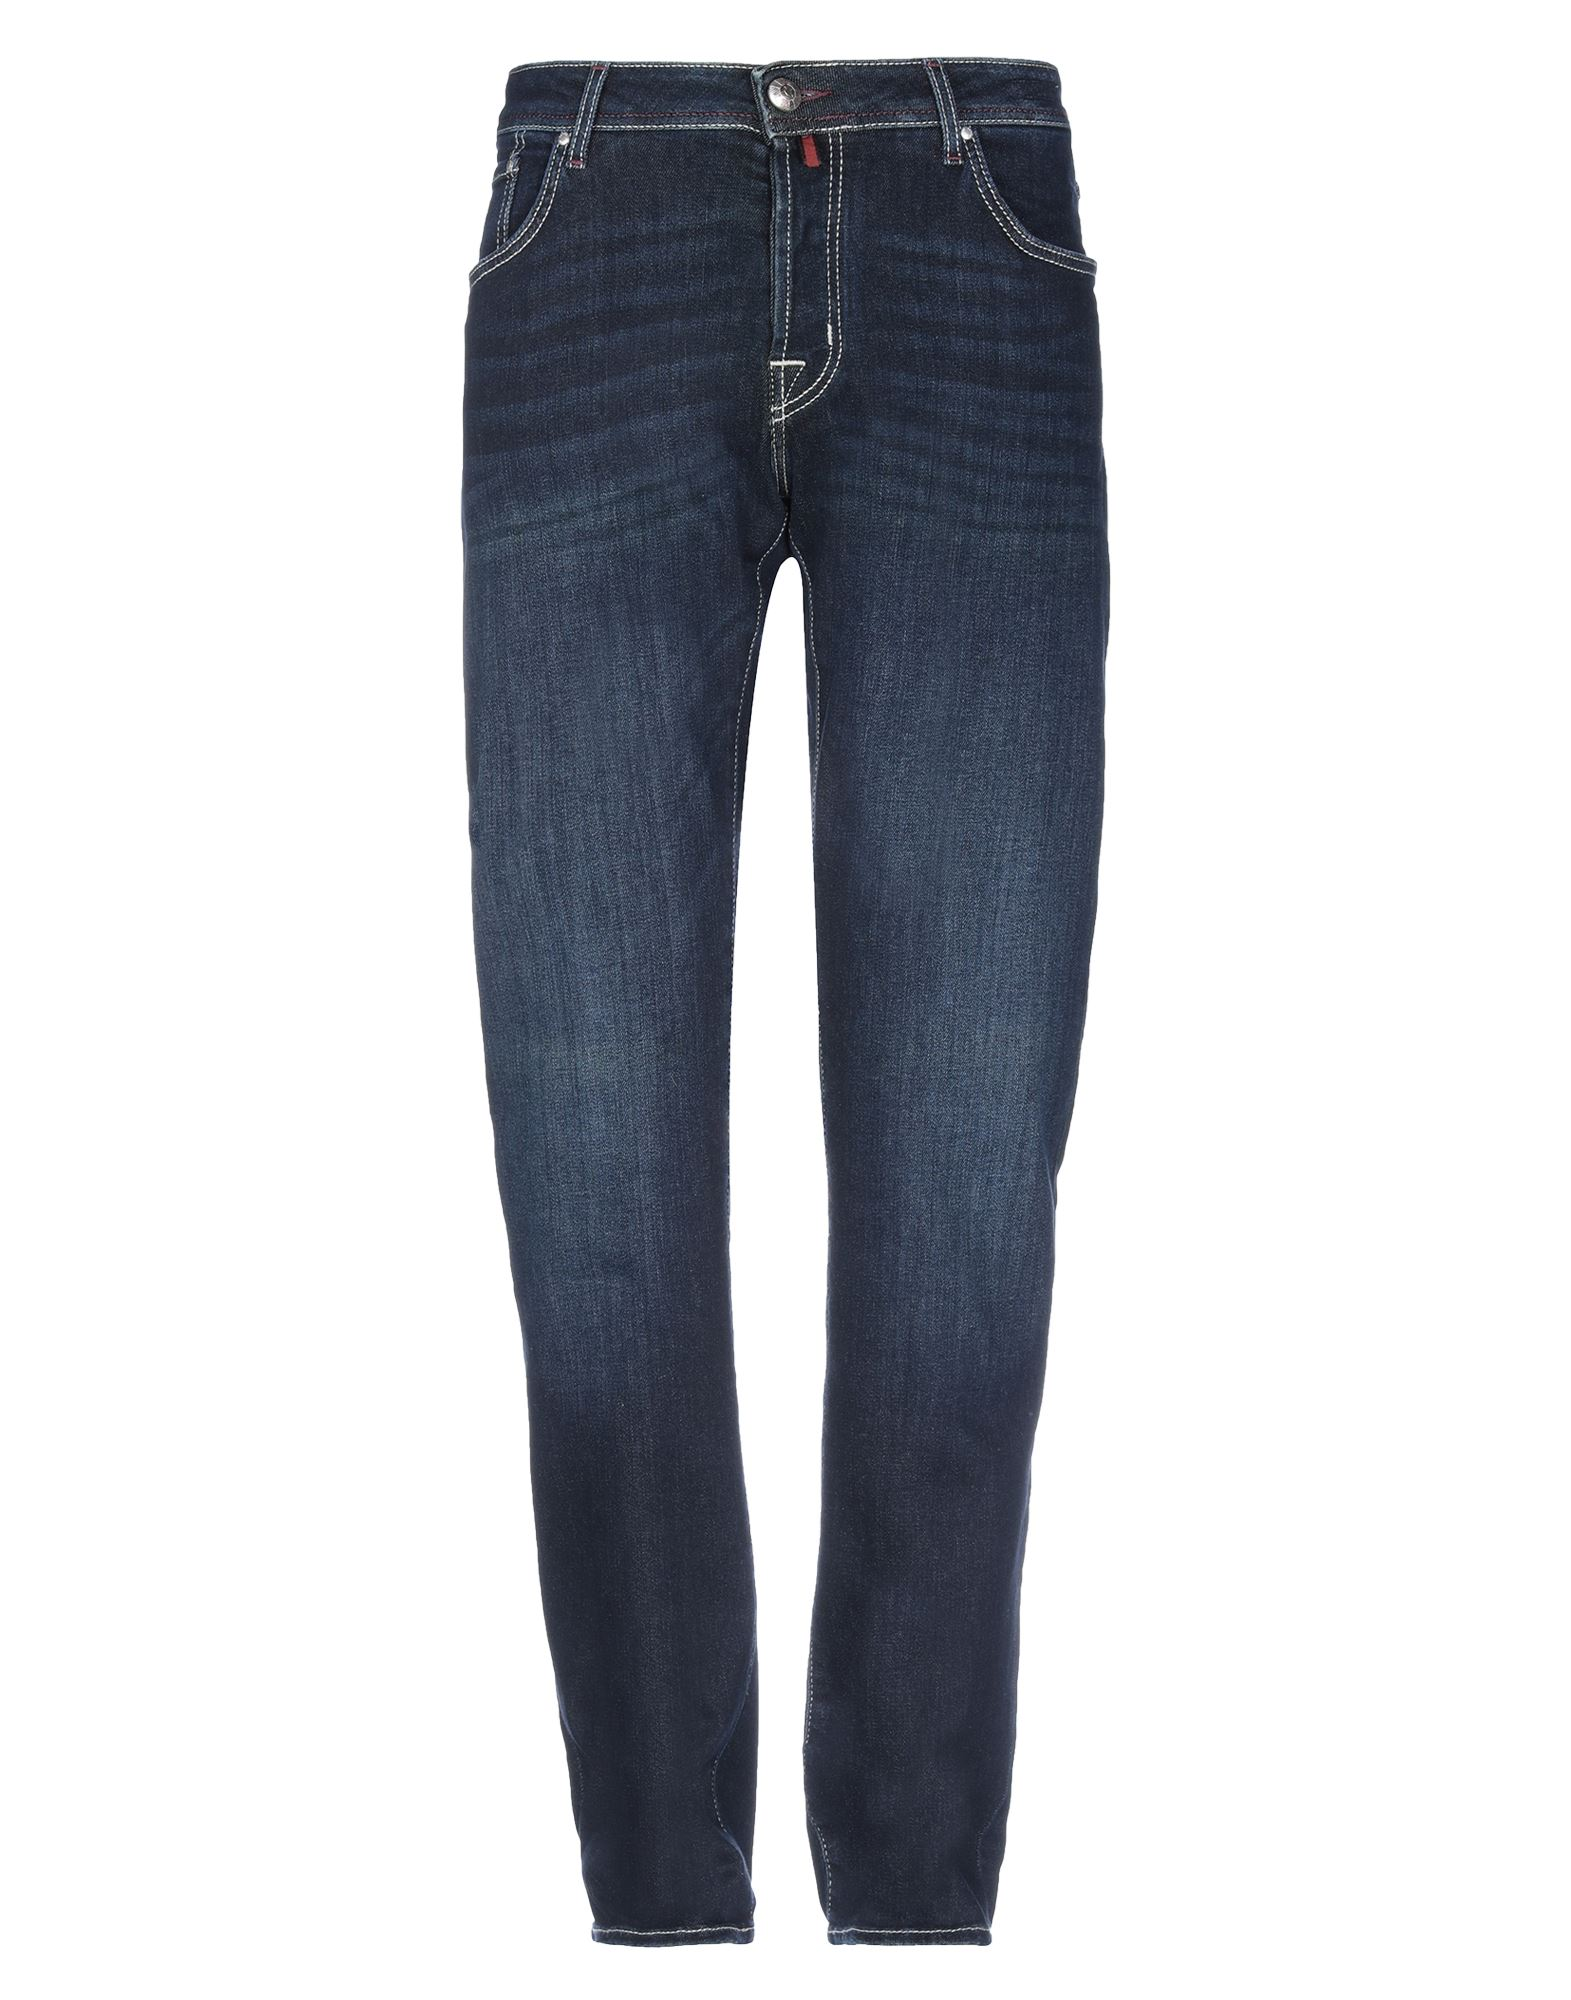 JACOB COHЁN Denim pants - Item 42829342